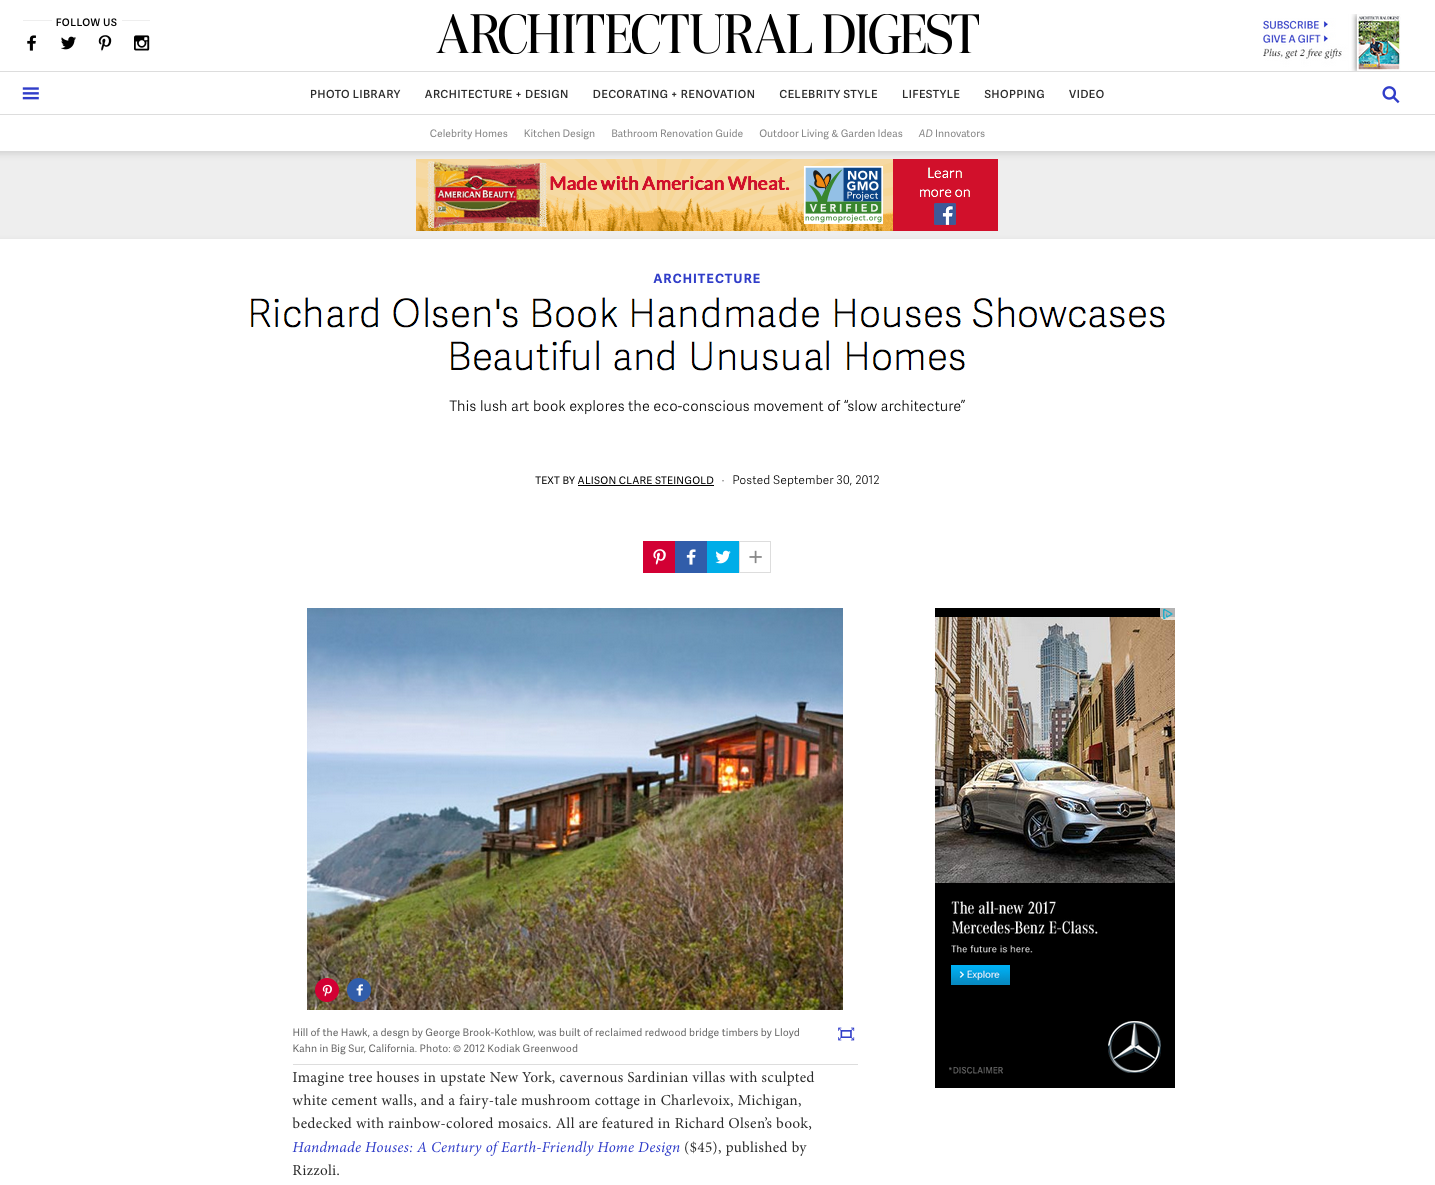 Handmade Houses   reviewed by Alison Clare Steingold in   Architectural Digest  , September 30, 2012.